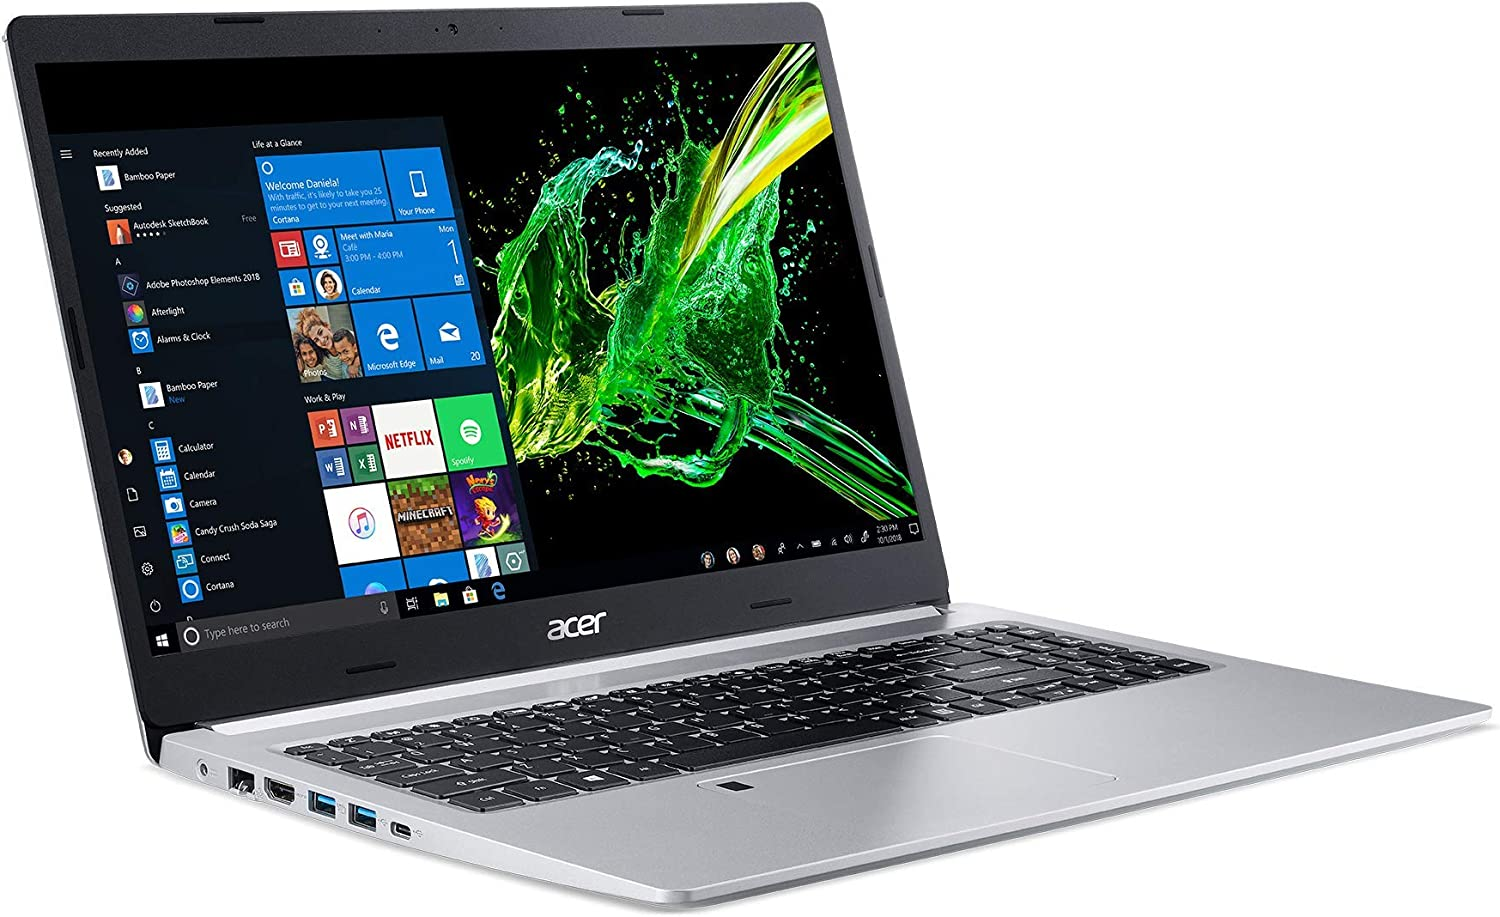 Acer Aspire 5 Slim Laptop, 15.6 Inches FHD IPS Display, 8th Gen Intel Core i5-8265U, 8GB DDR4, 256GB SSD, Fingerprint Reader, Windows 10 Home, A515-54-51DJ (Renewed)